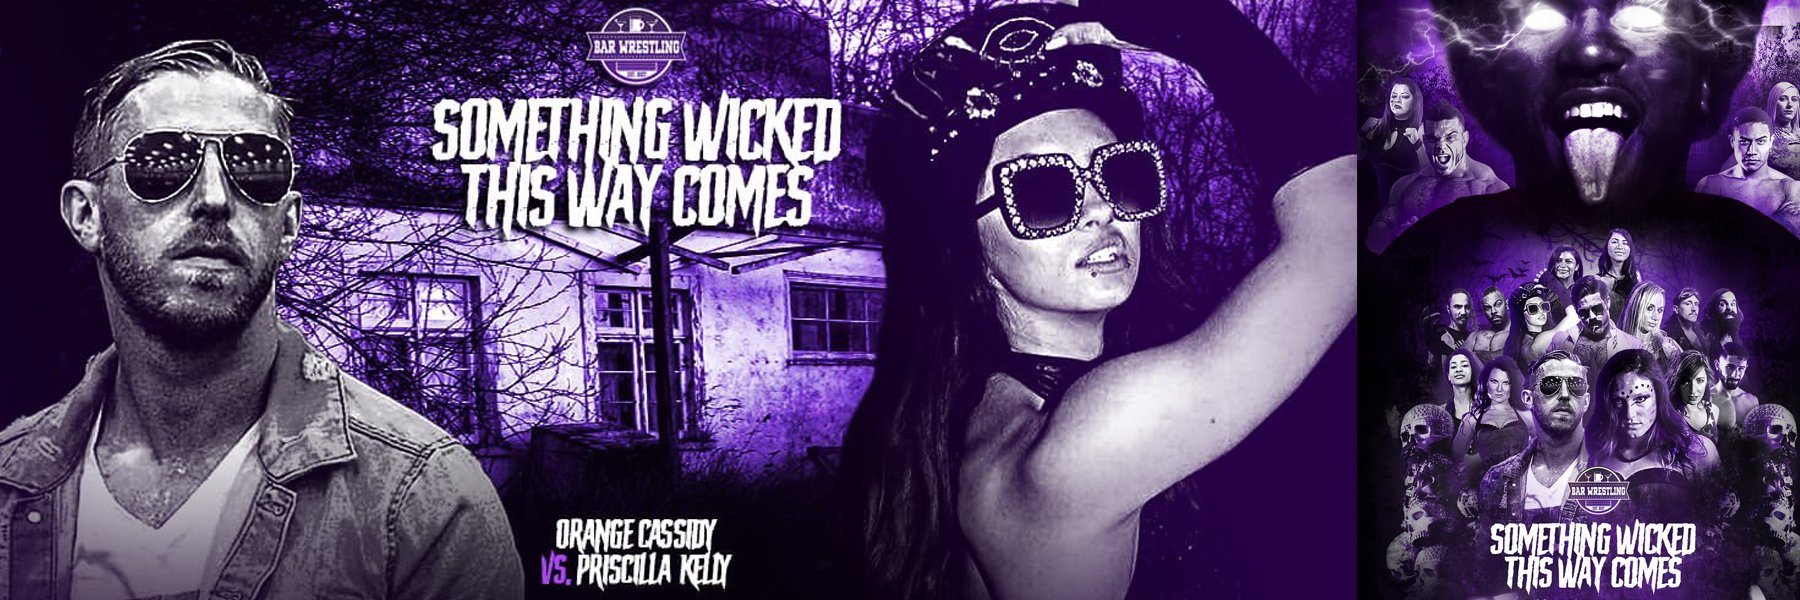 Bar Wrestling 46: Orange Cassidy vs Priscilla Kelly, Joey Ryan vs Addy Star